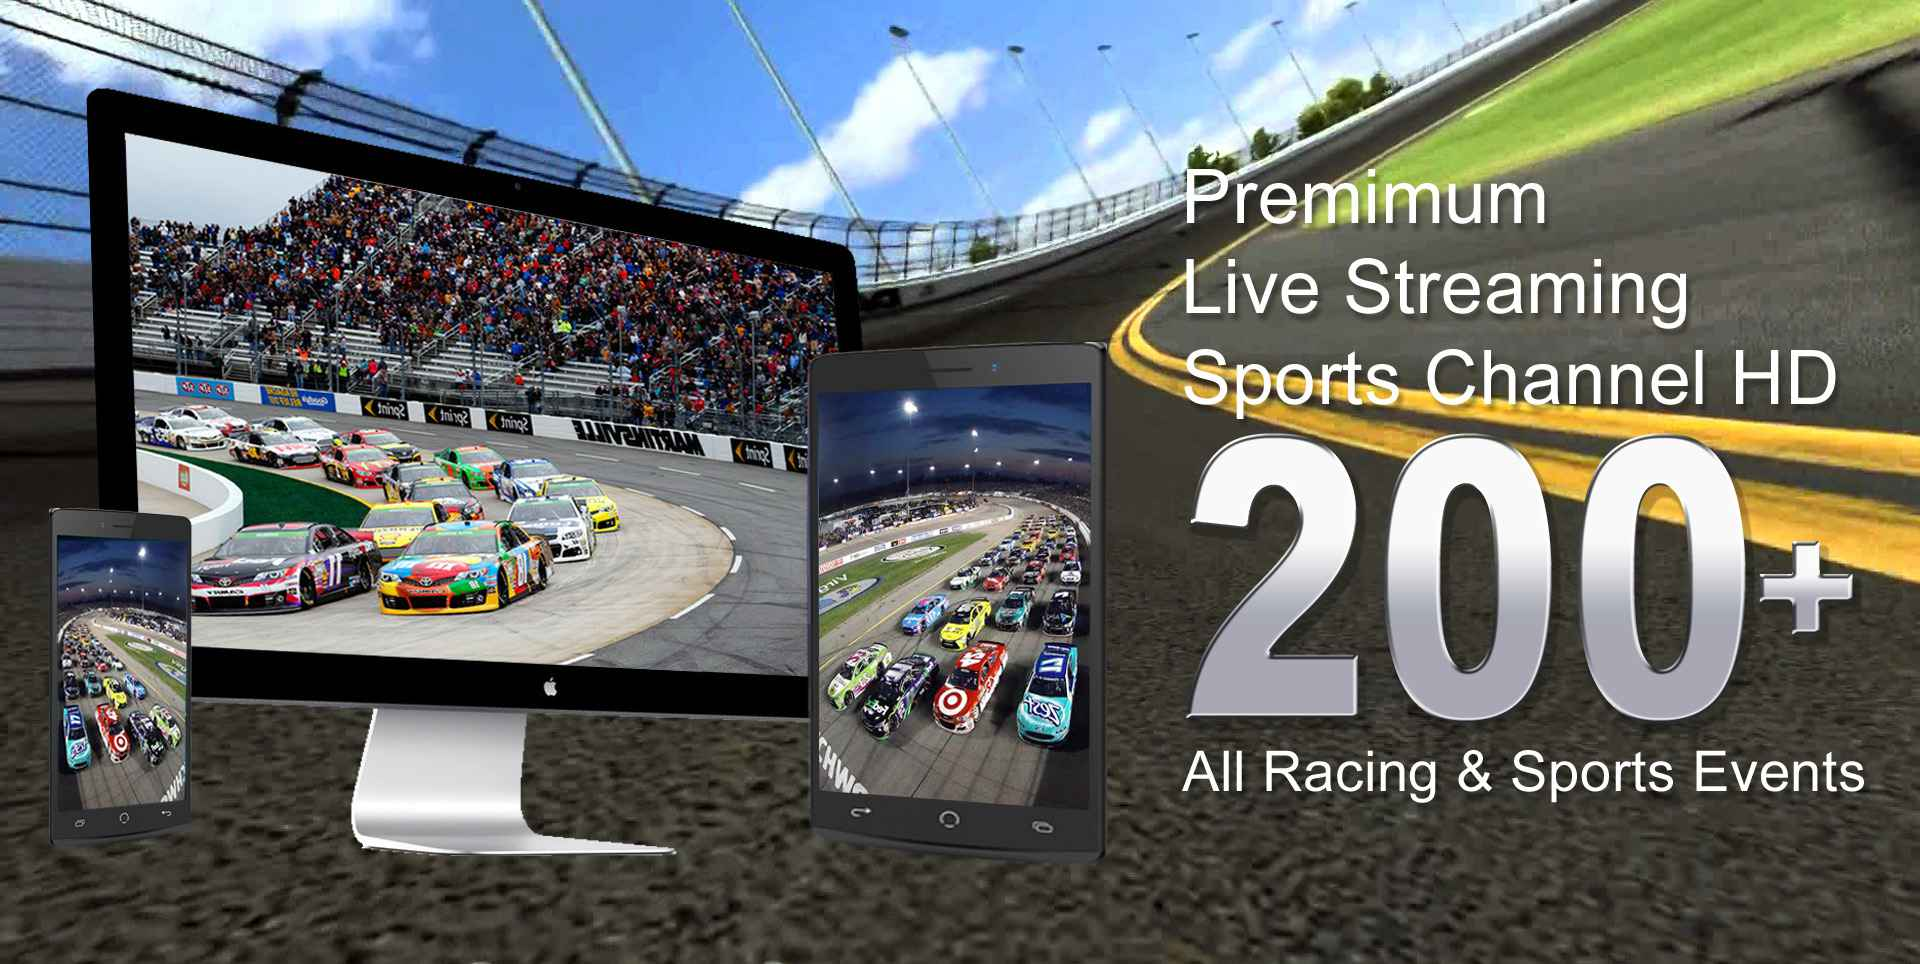 nascar%20400%20windows%2010 2015 NASCAR Windows 10 400 Live Streaming